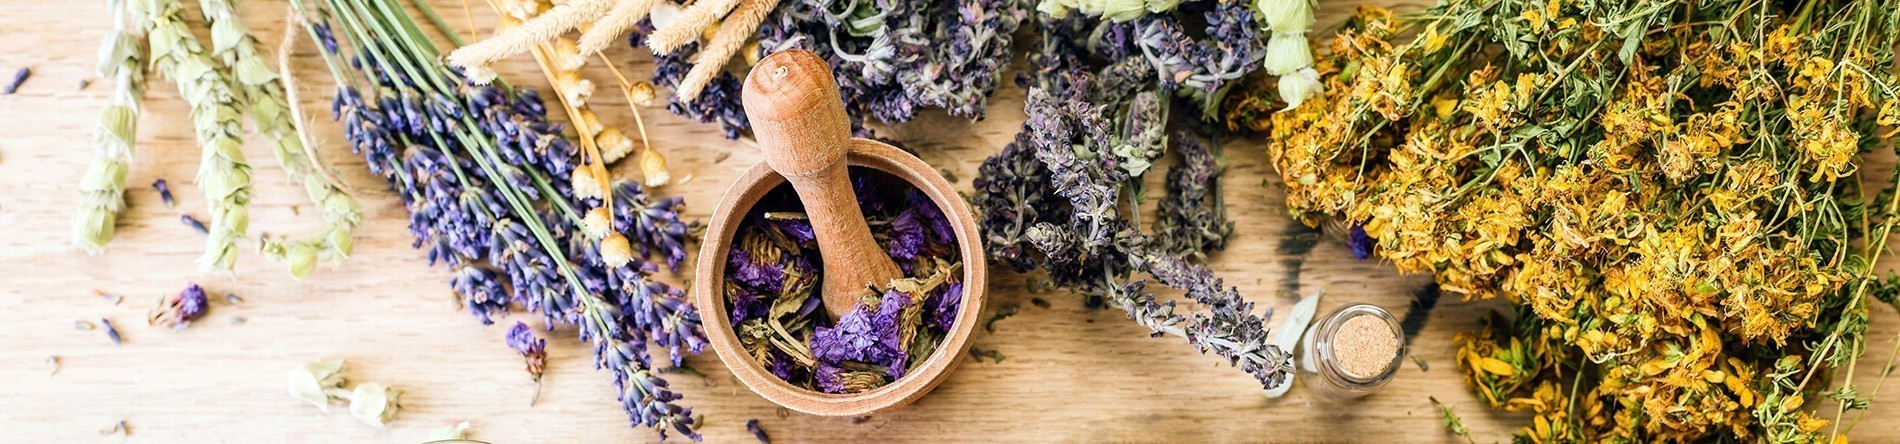 Tranditional Remedies For Common Illnesses - Herbs on table